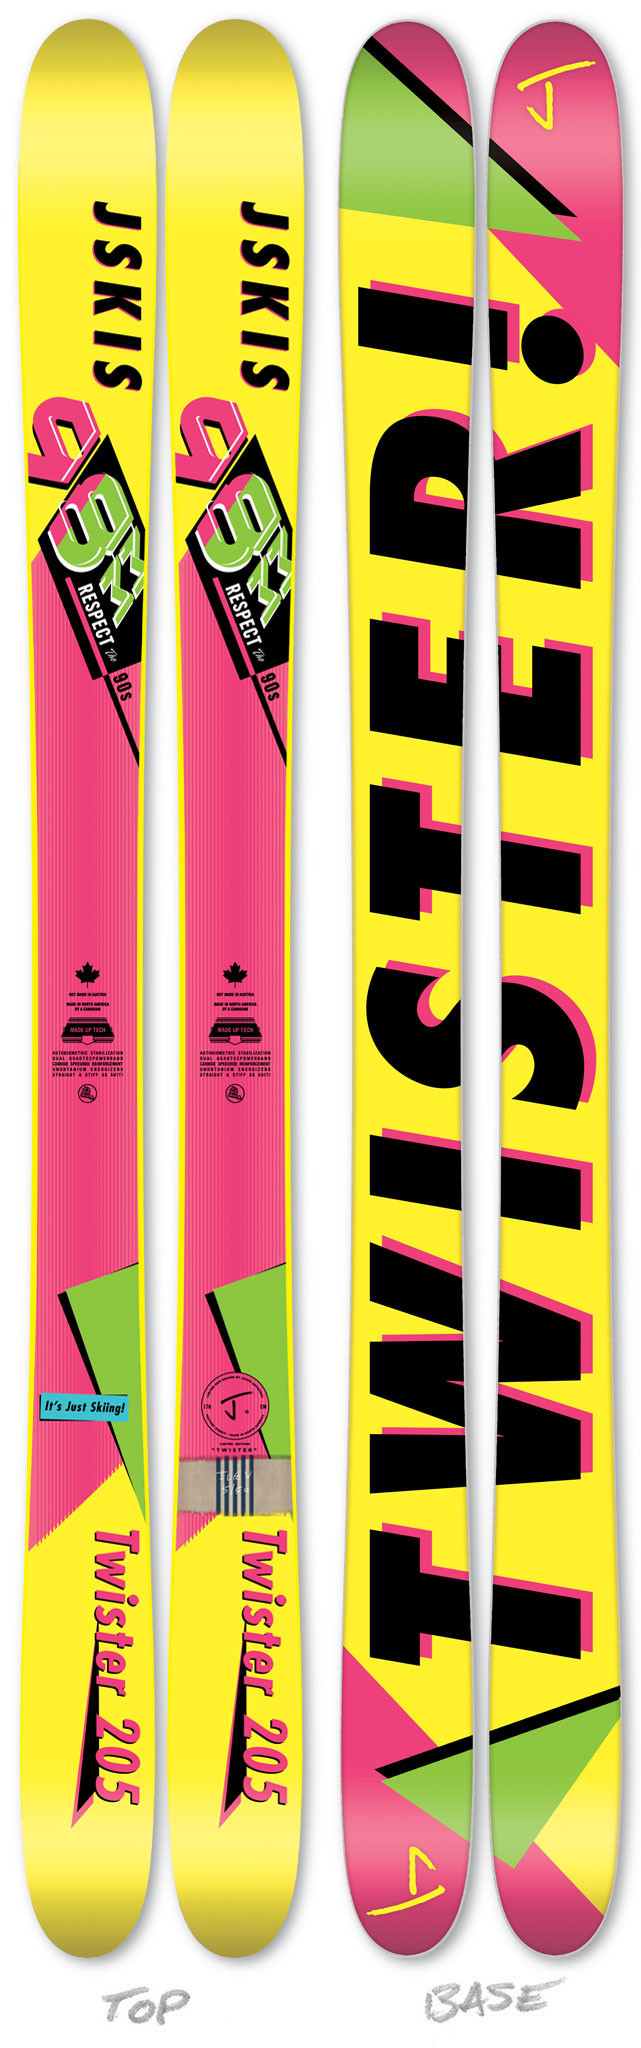 162e189f92 See Skis Here! - gt  http   jskis.com collections